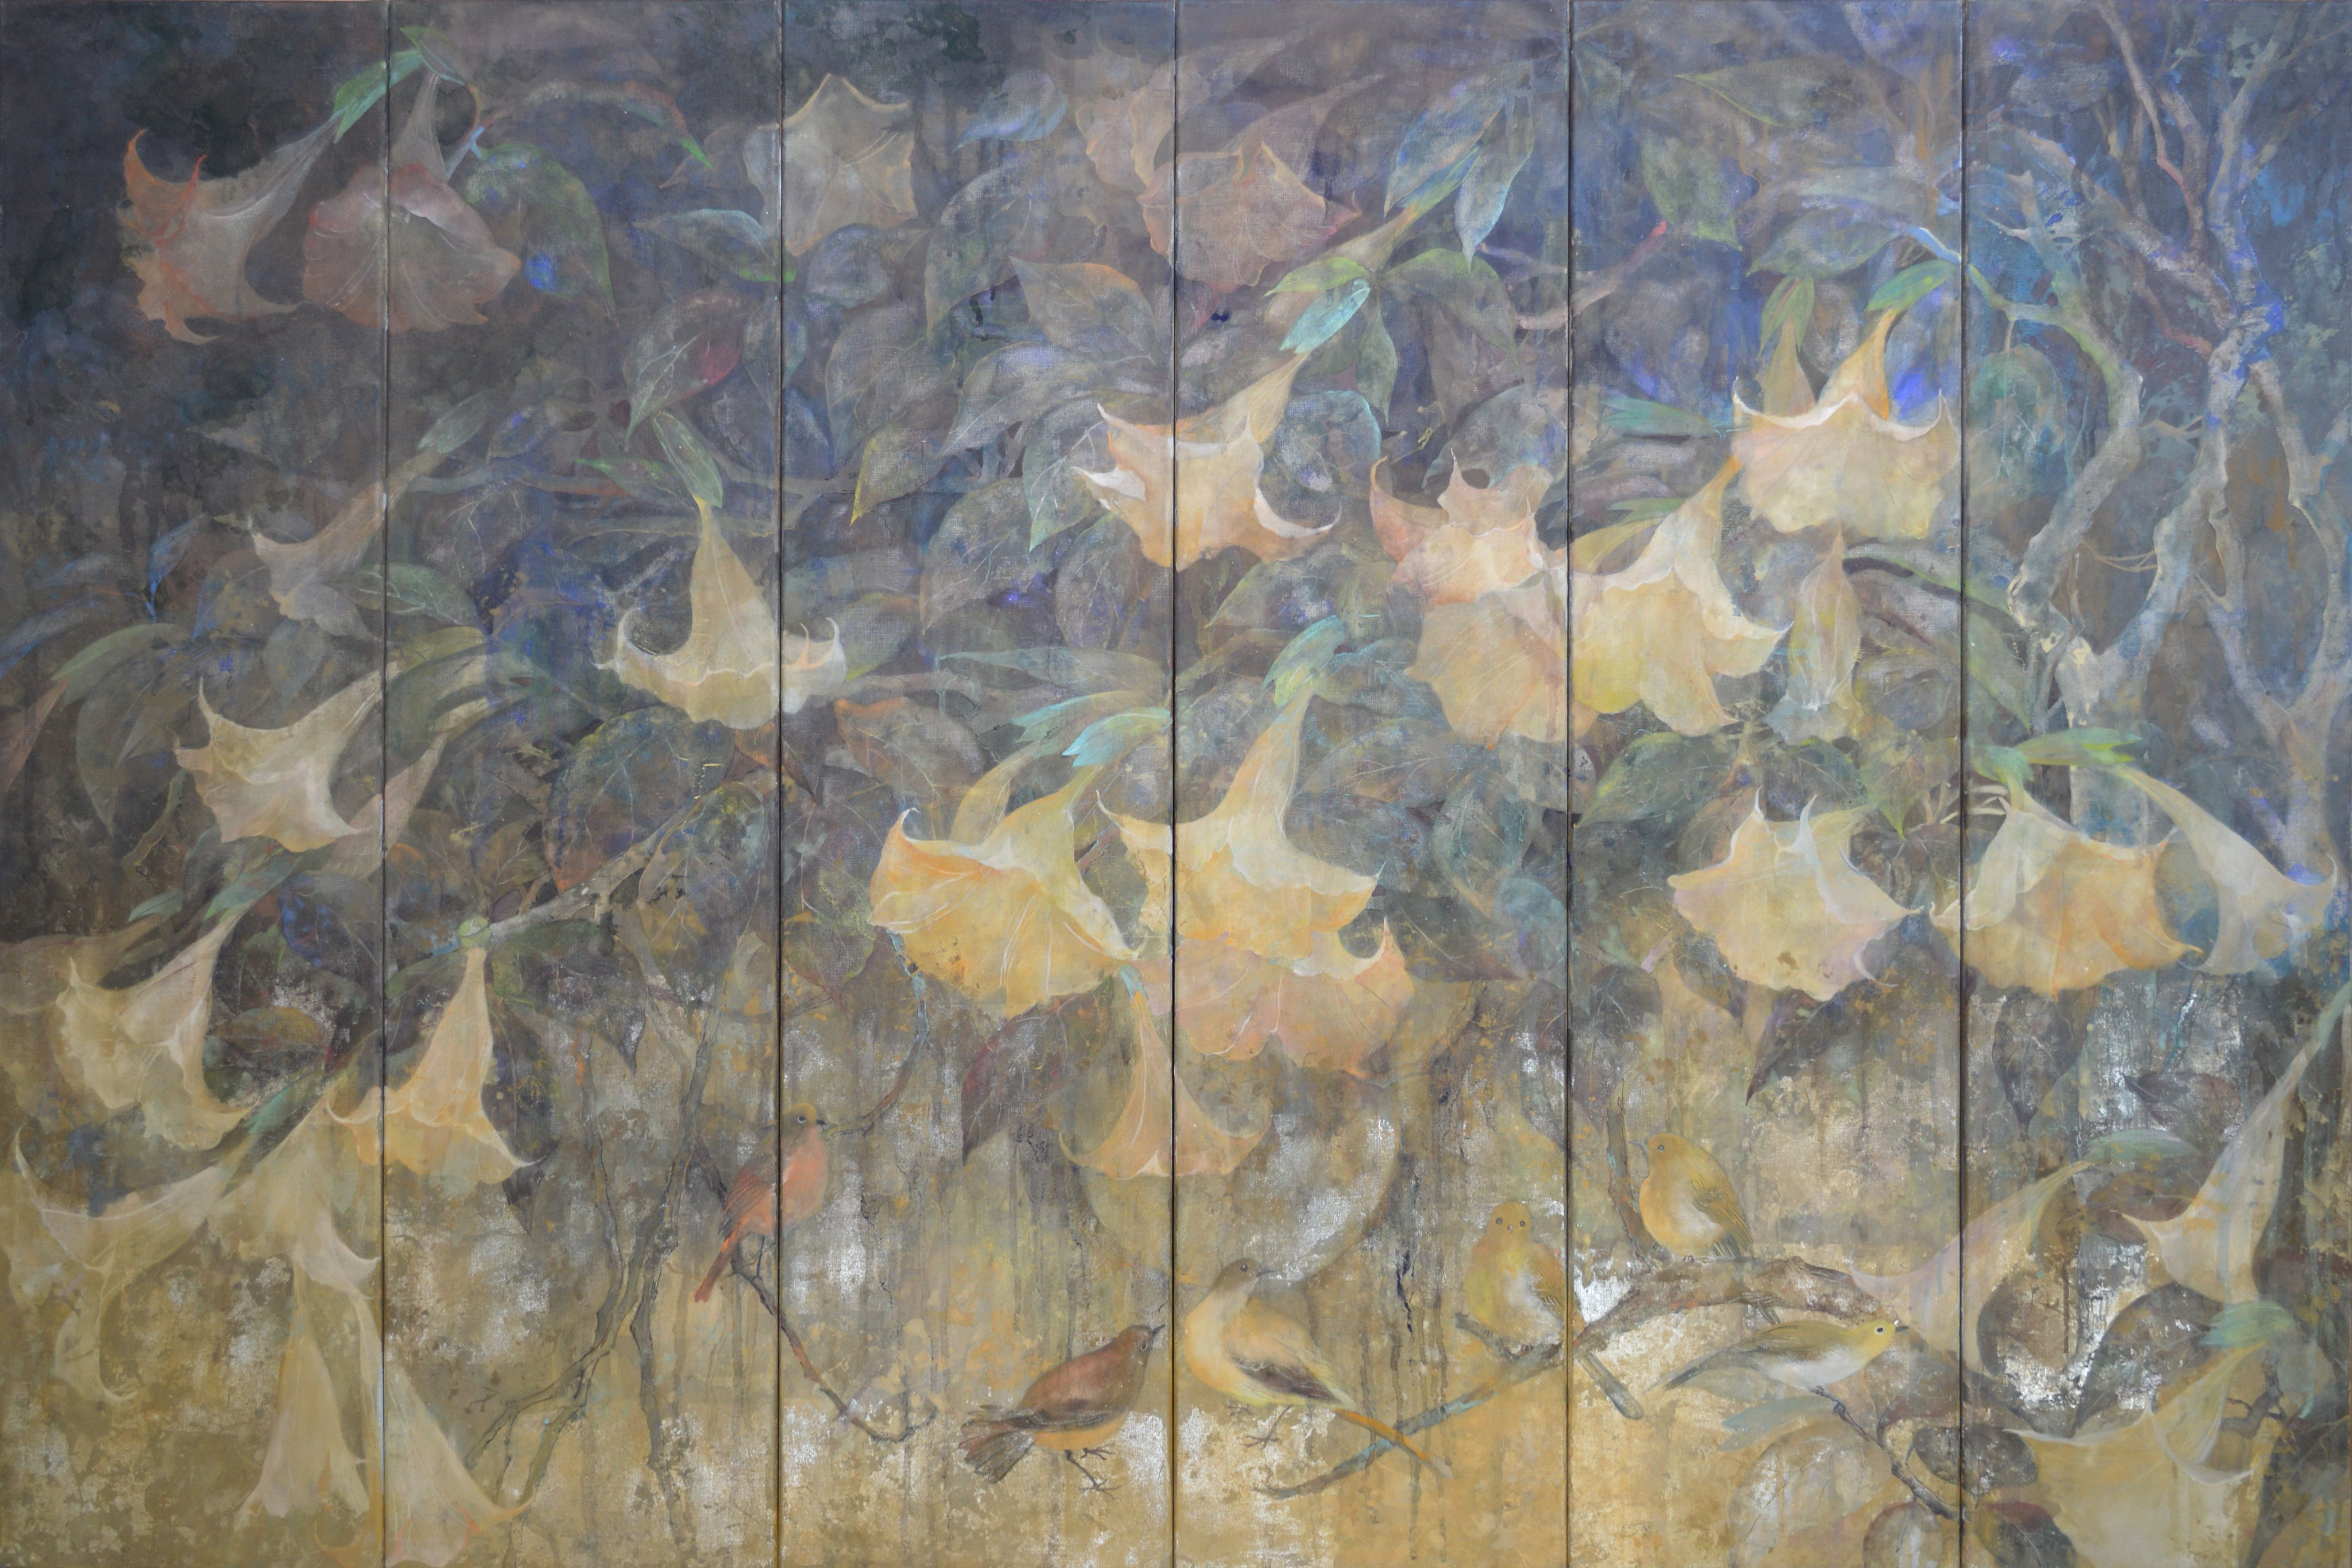 Poésie de nuit,Chen Yiching,Contemporary painting